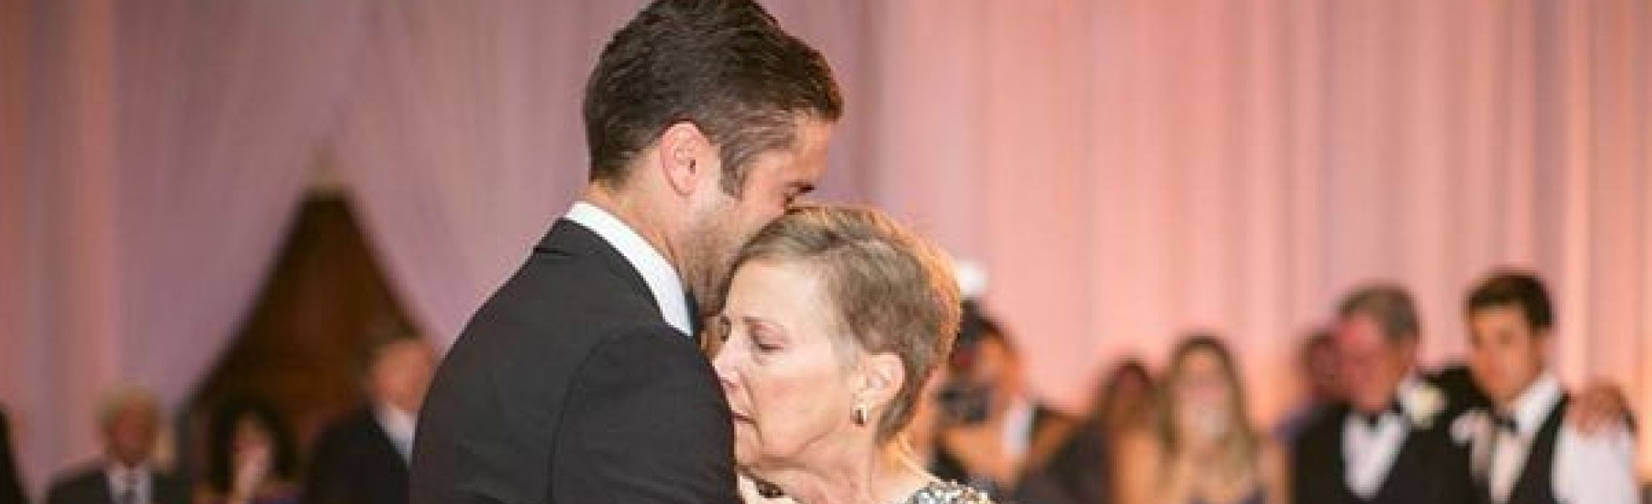 The Mother of the Groom, got her Final Wish before succumbing to cancer